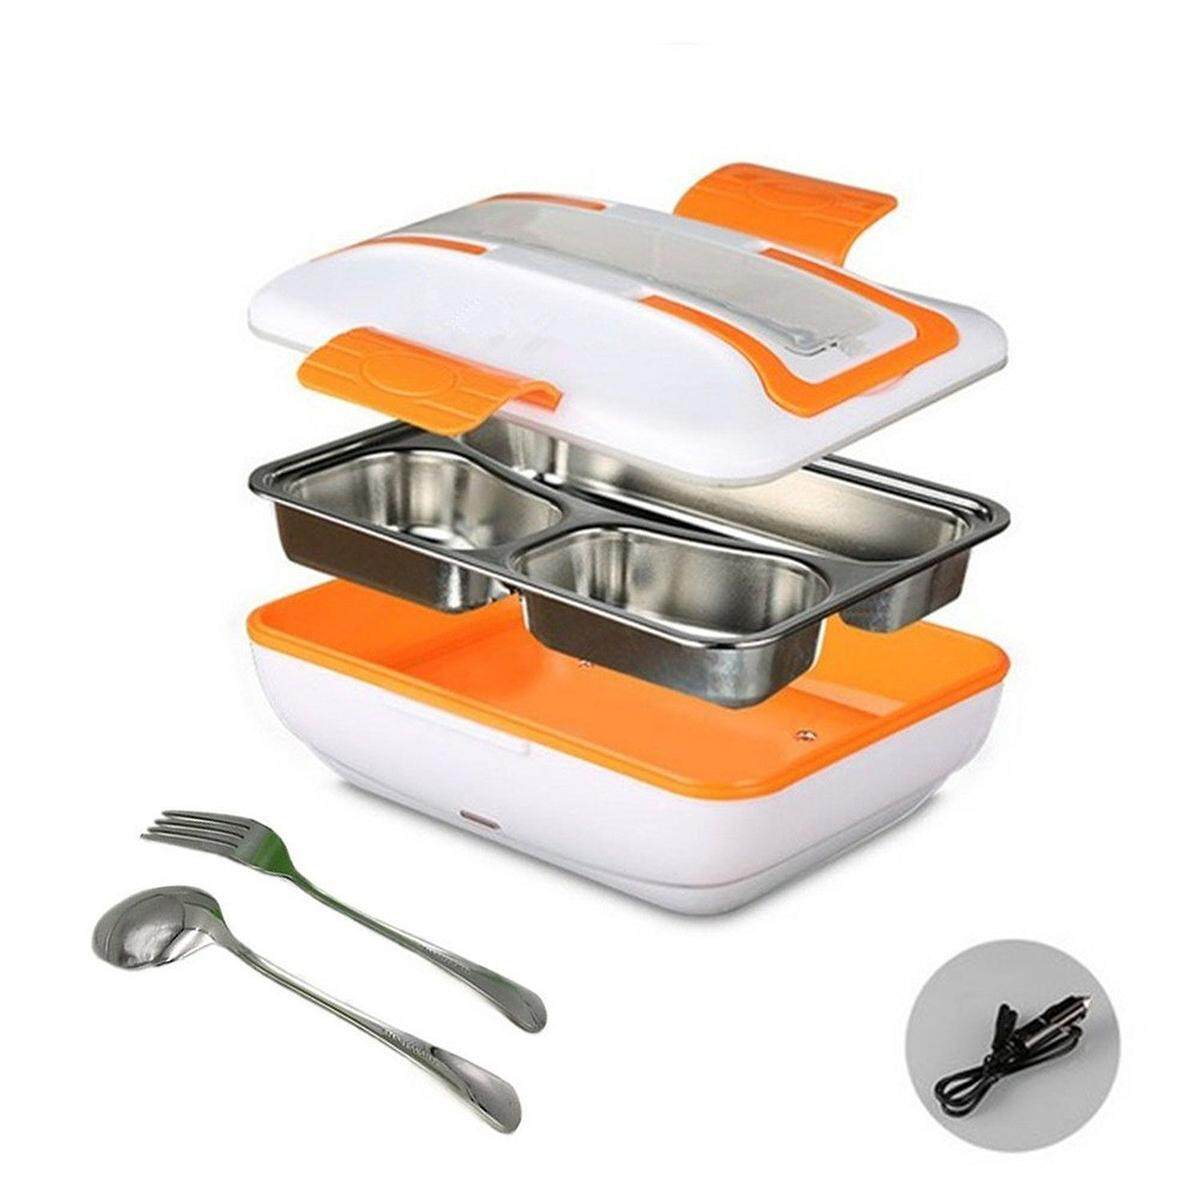 Portable Car Truck Electric Heating Lunch Box Food Warm Heater Storage Container - Intl By Audew.